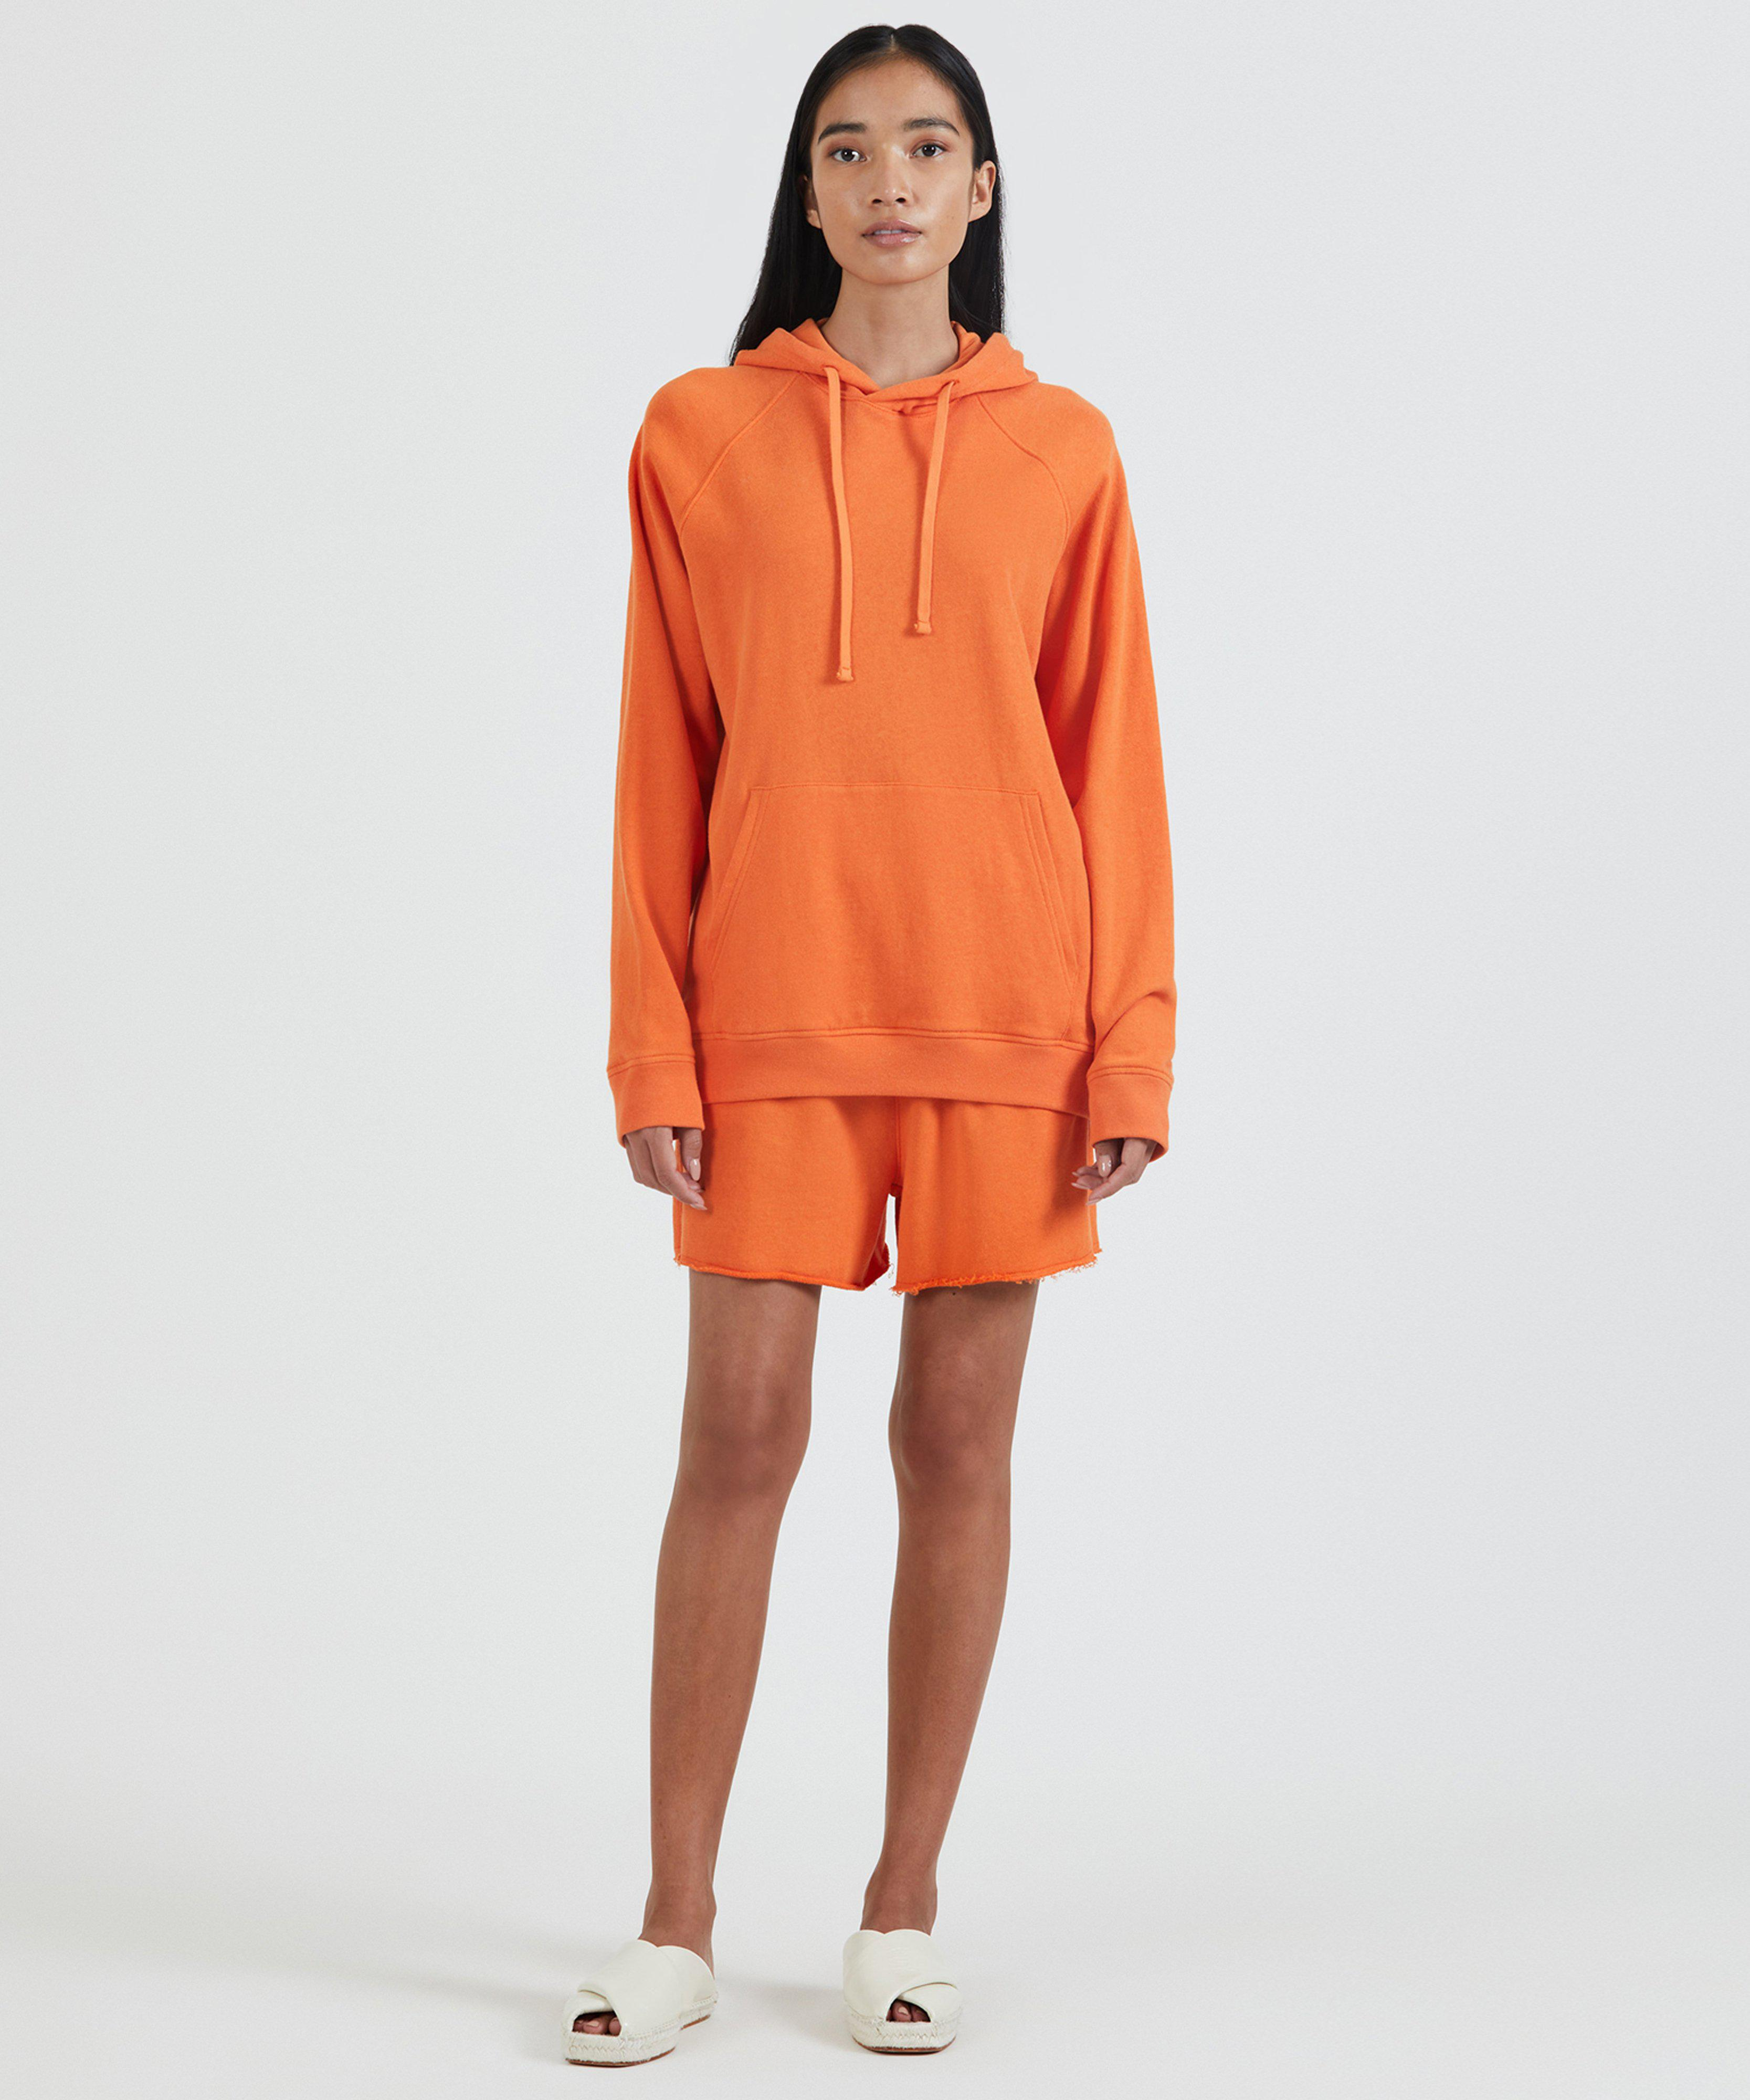 French Terry Pull-On Short - Clementine 4